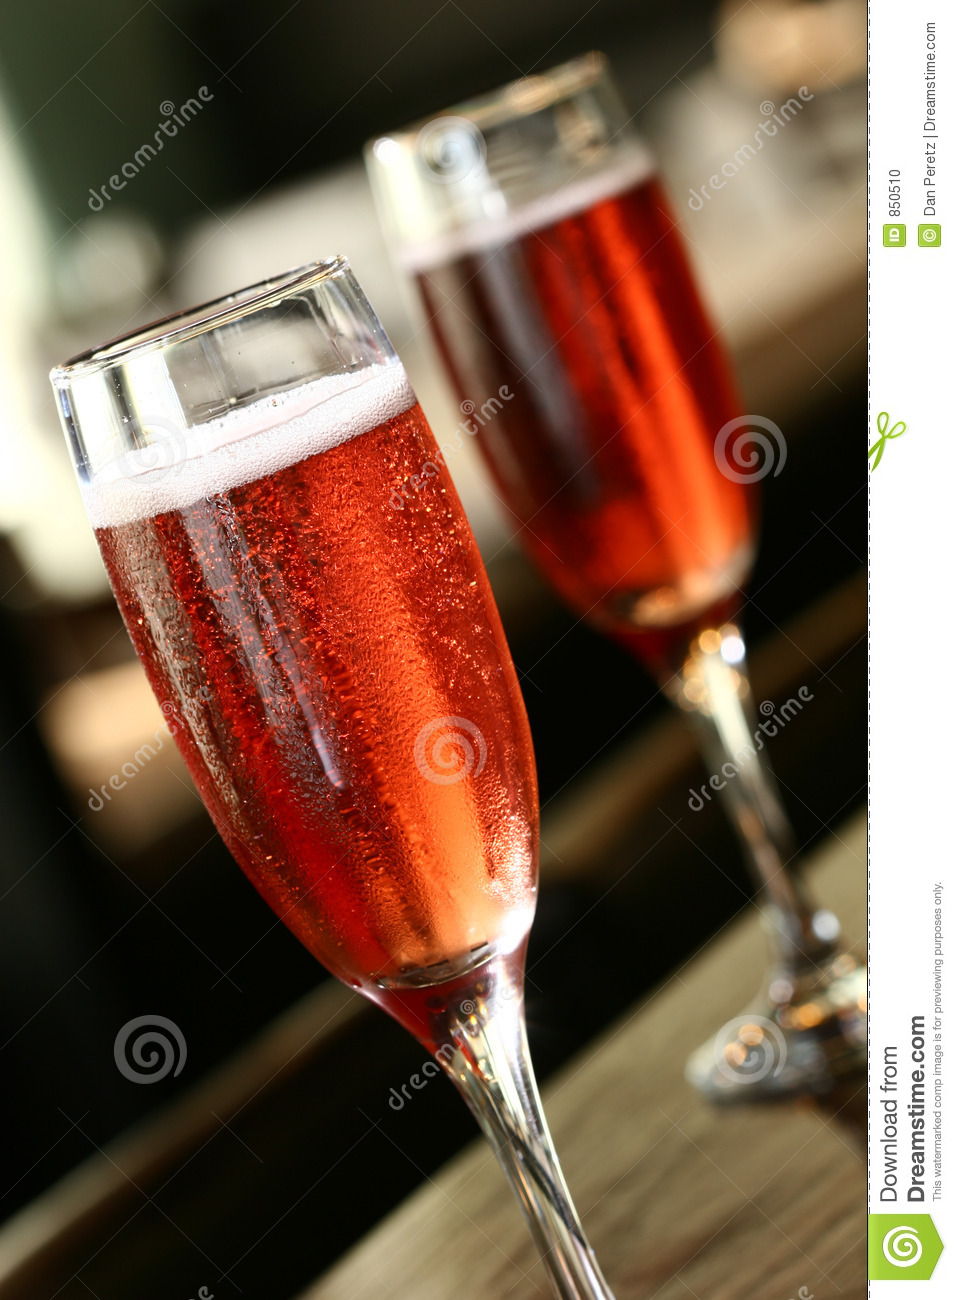 Kir royal cocmtail